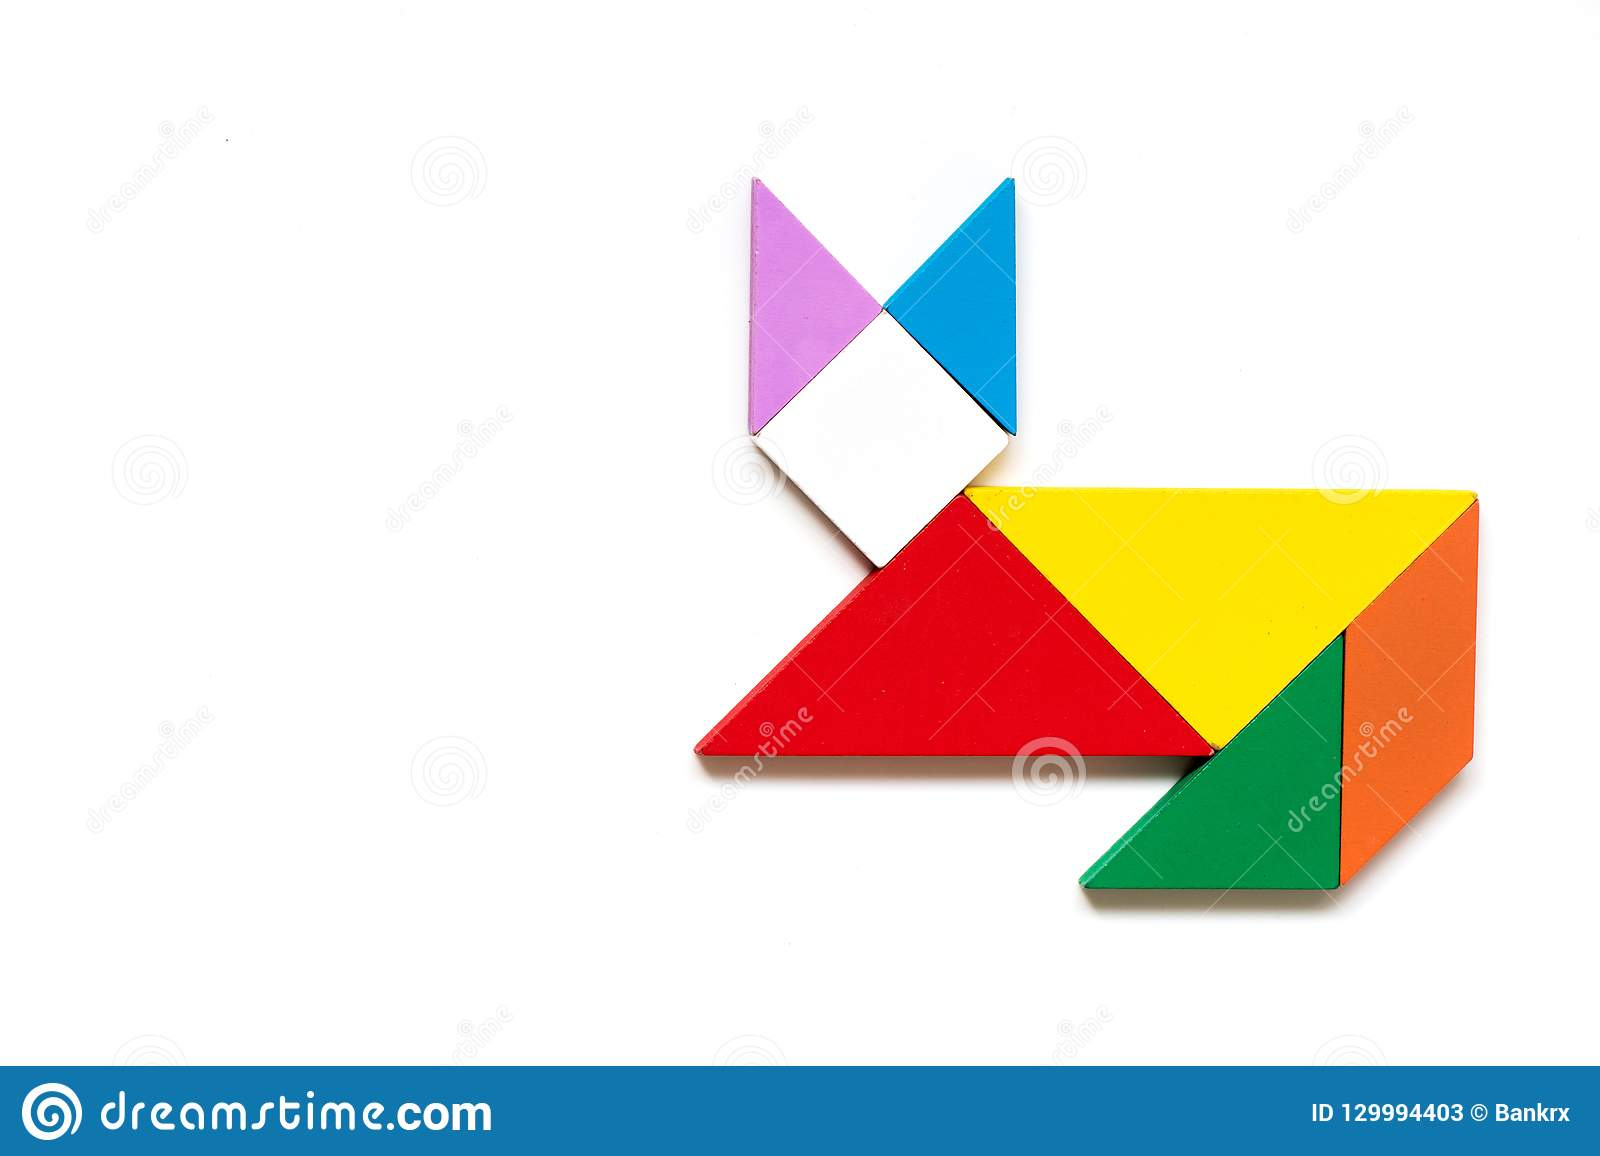 Color Wood Tangram Puzzle In Cat Shape Stock Image - Image pour Tangram Simple